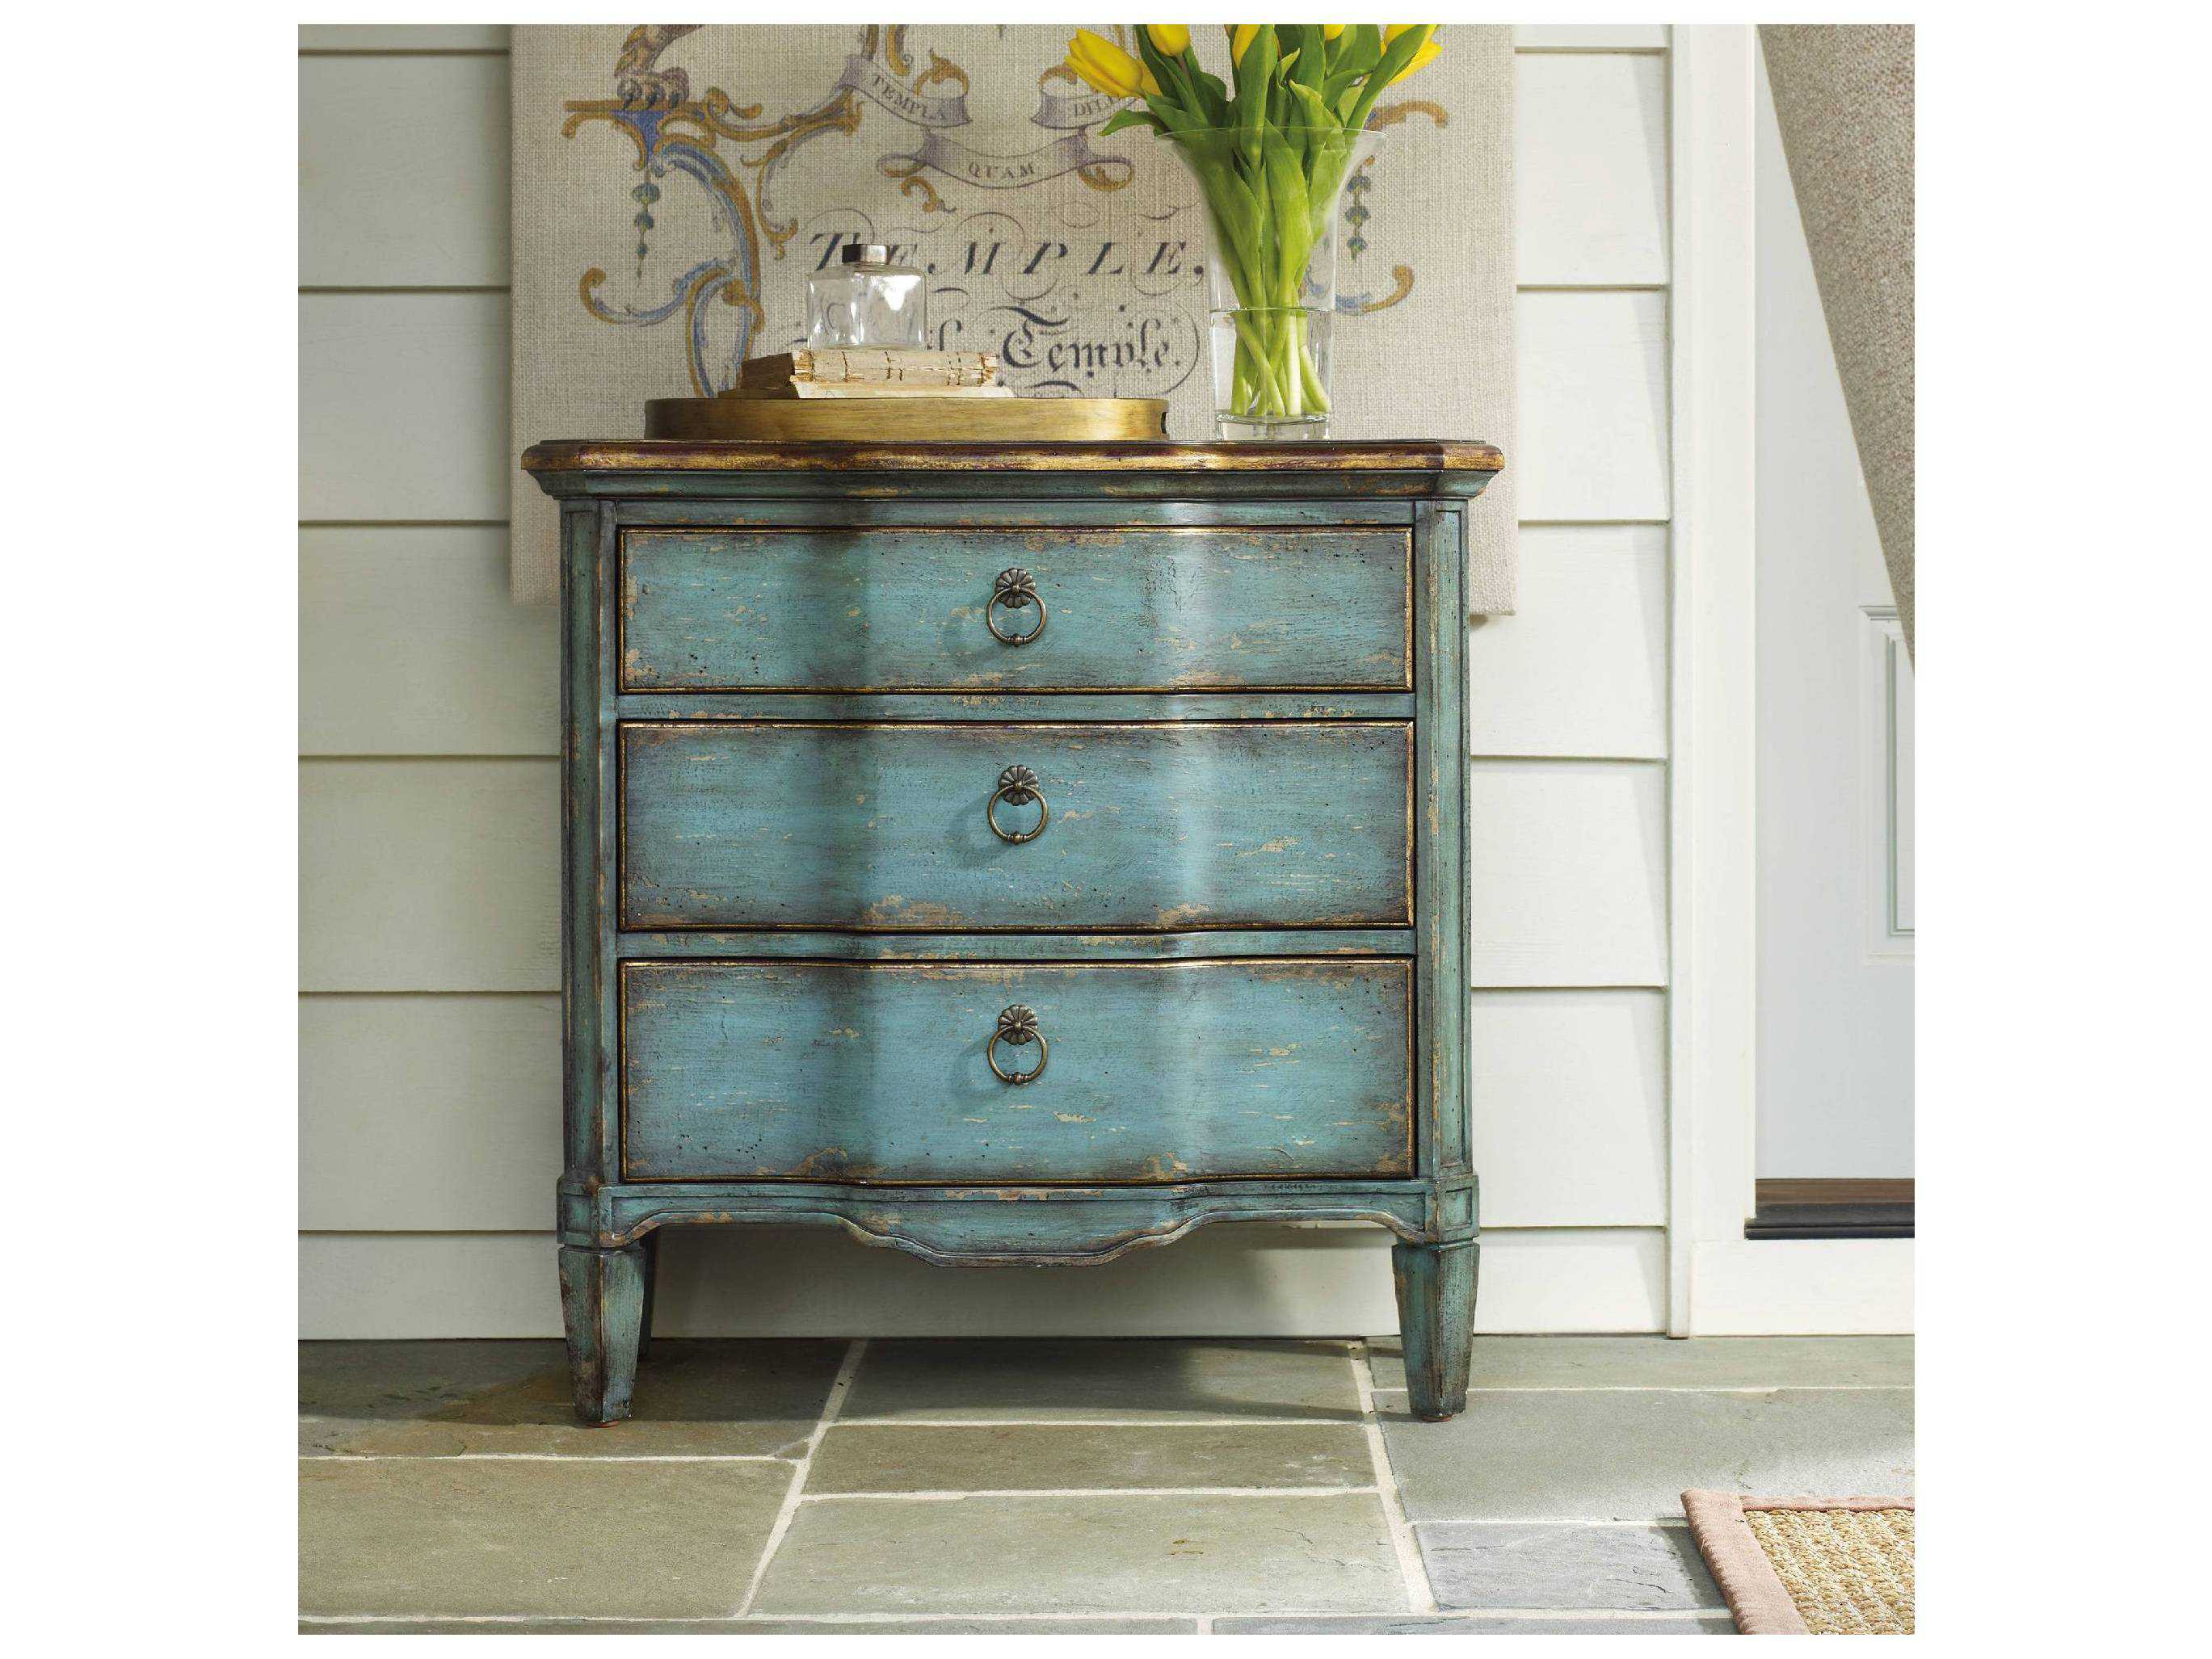 hooker furniture blue accent chest fretwork table turquoise dresser slim side ikea entryway dale tiffany glass wall art roland drum stool driftwood cloth white tray target small